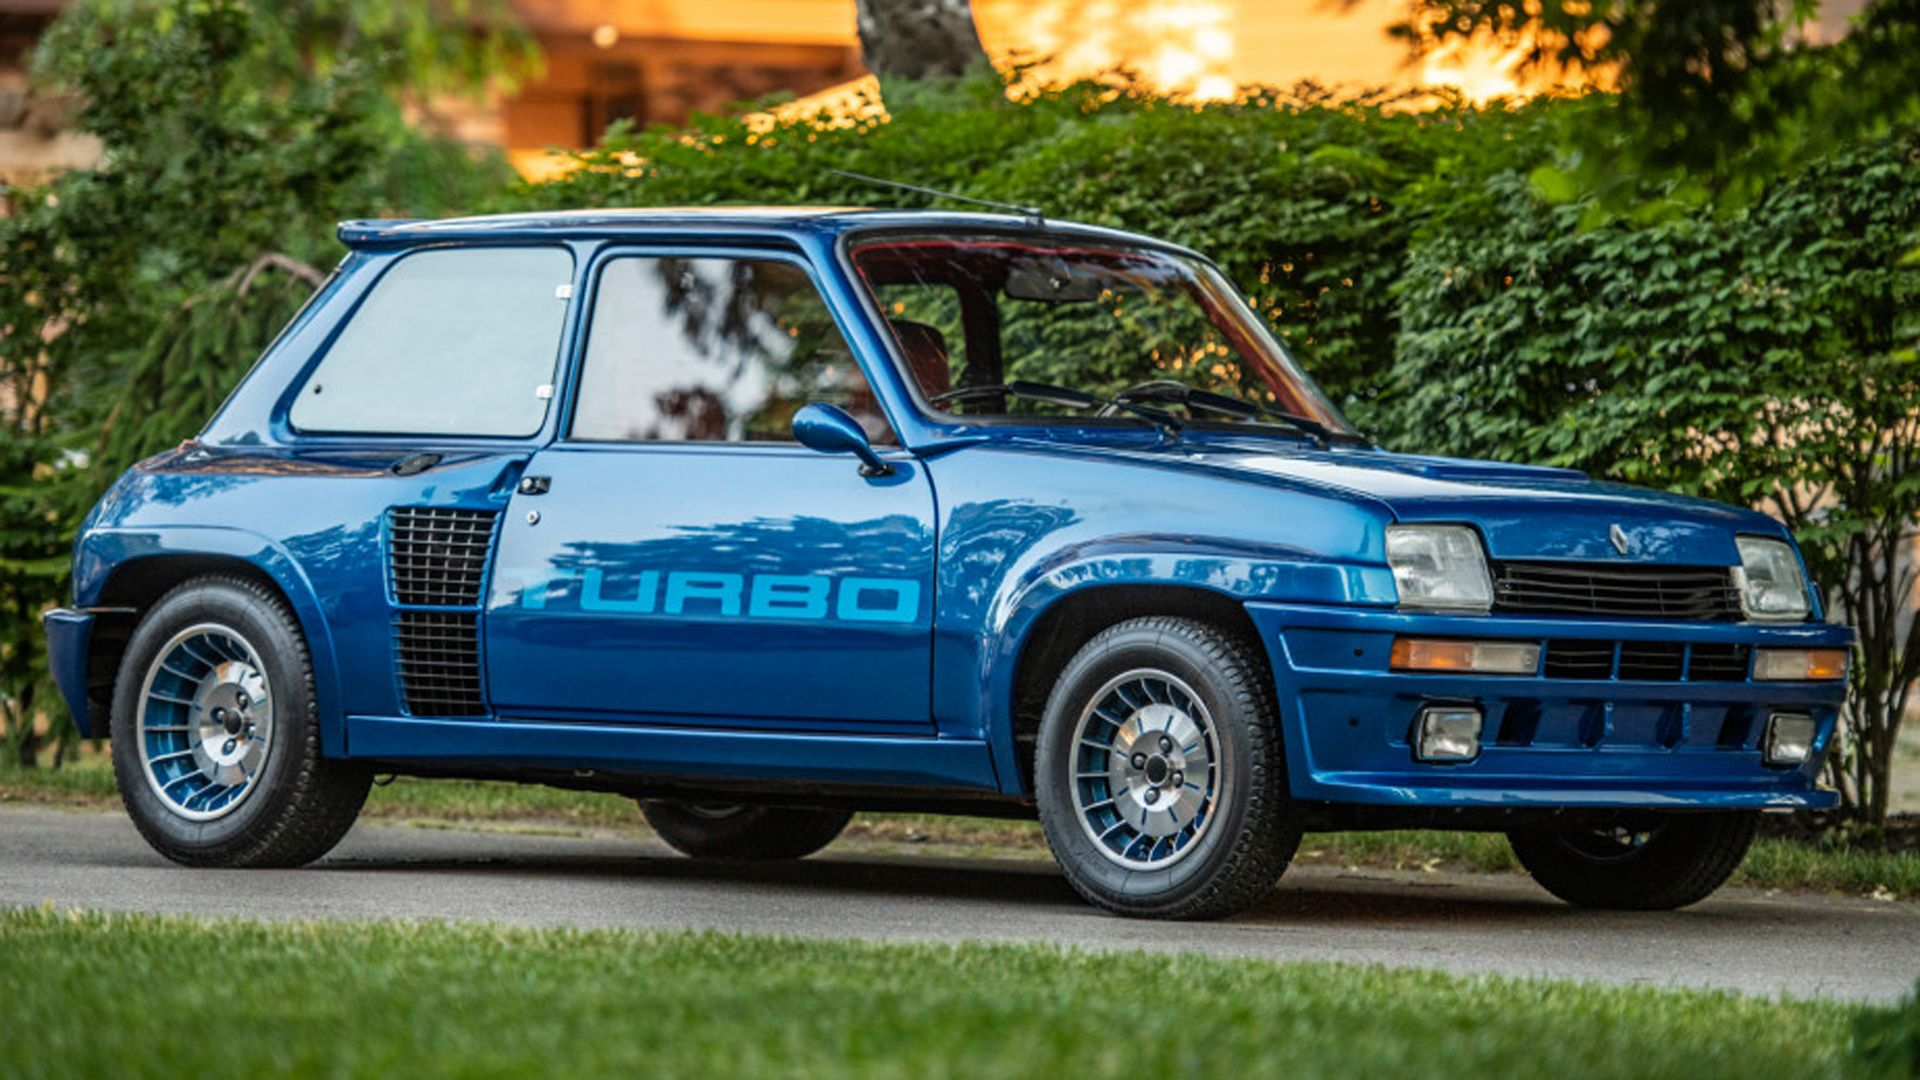 Hit The Trails In A Rally Bred 1981 Renault R5 Turbo